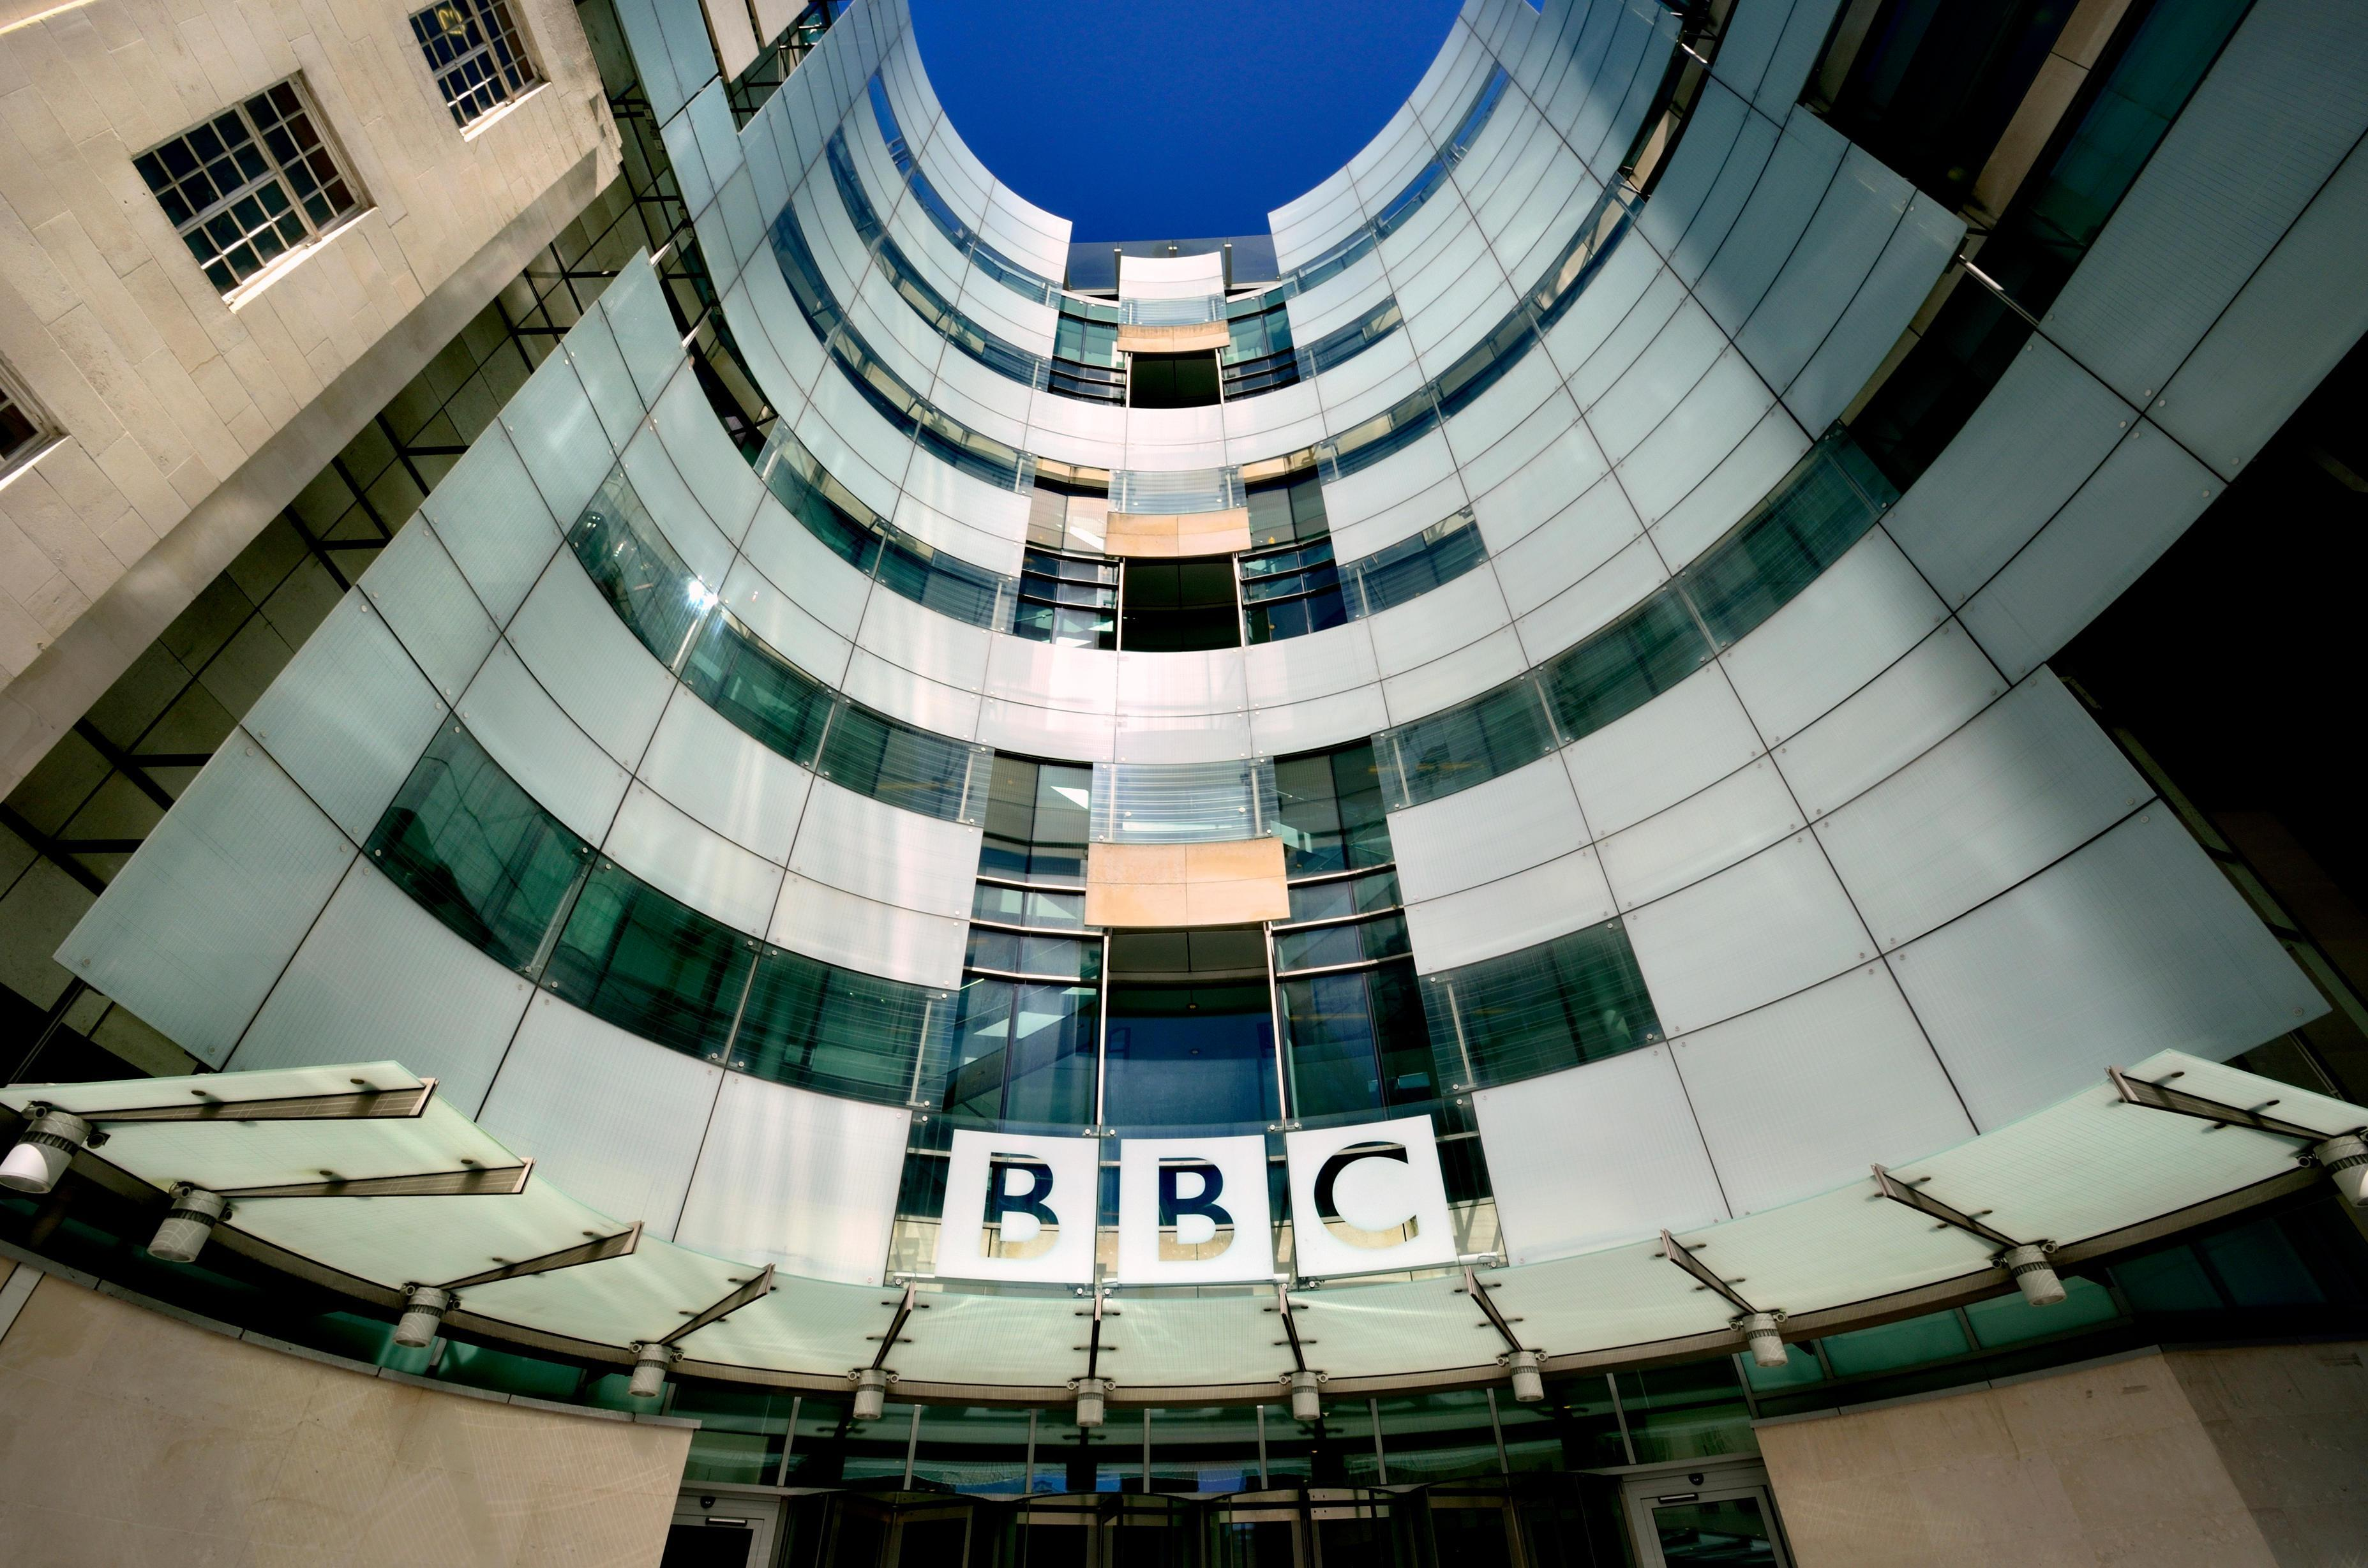 Licence-payers face bill for MILLIONS after BBC made staff go unpaid for six months and work through cancer treatment